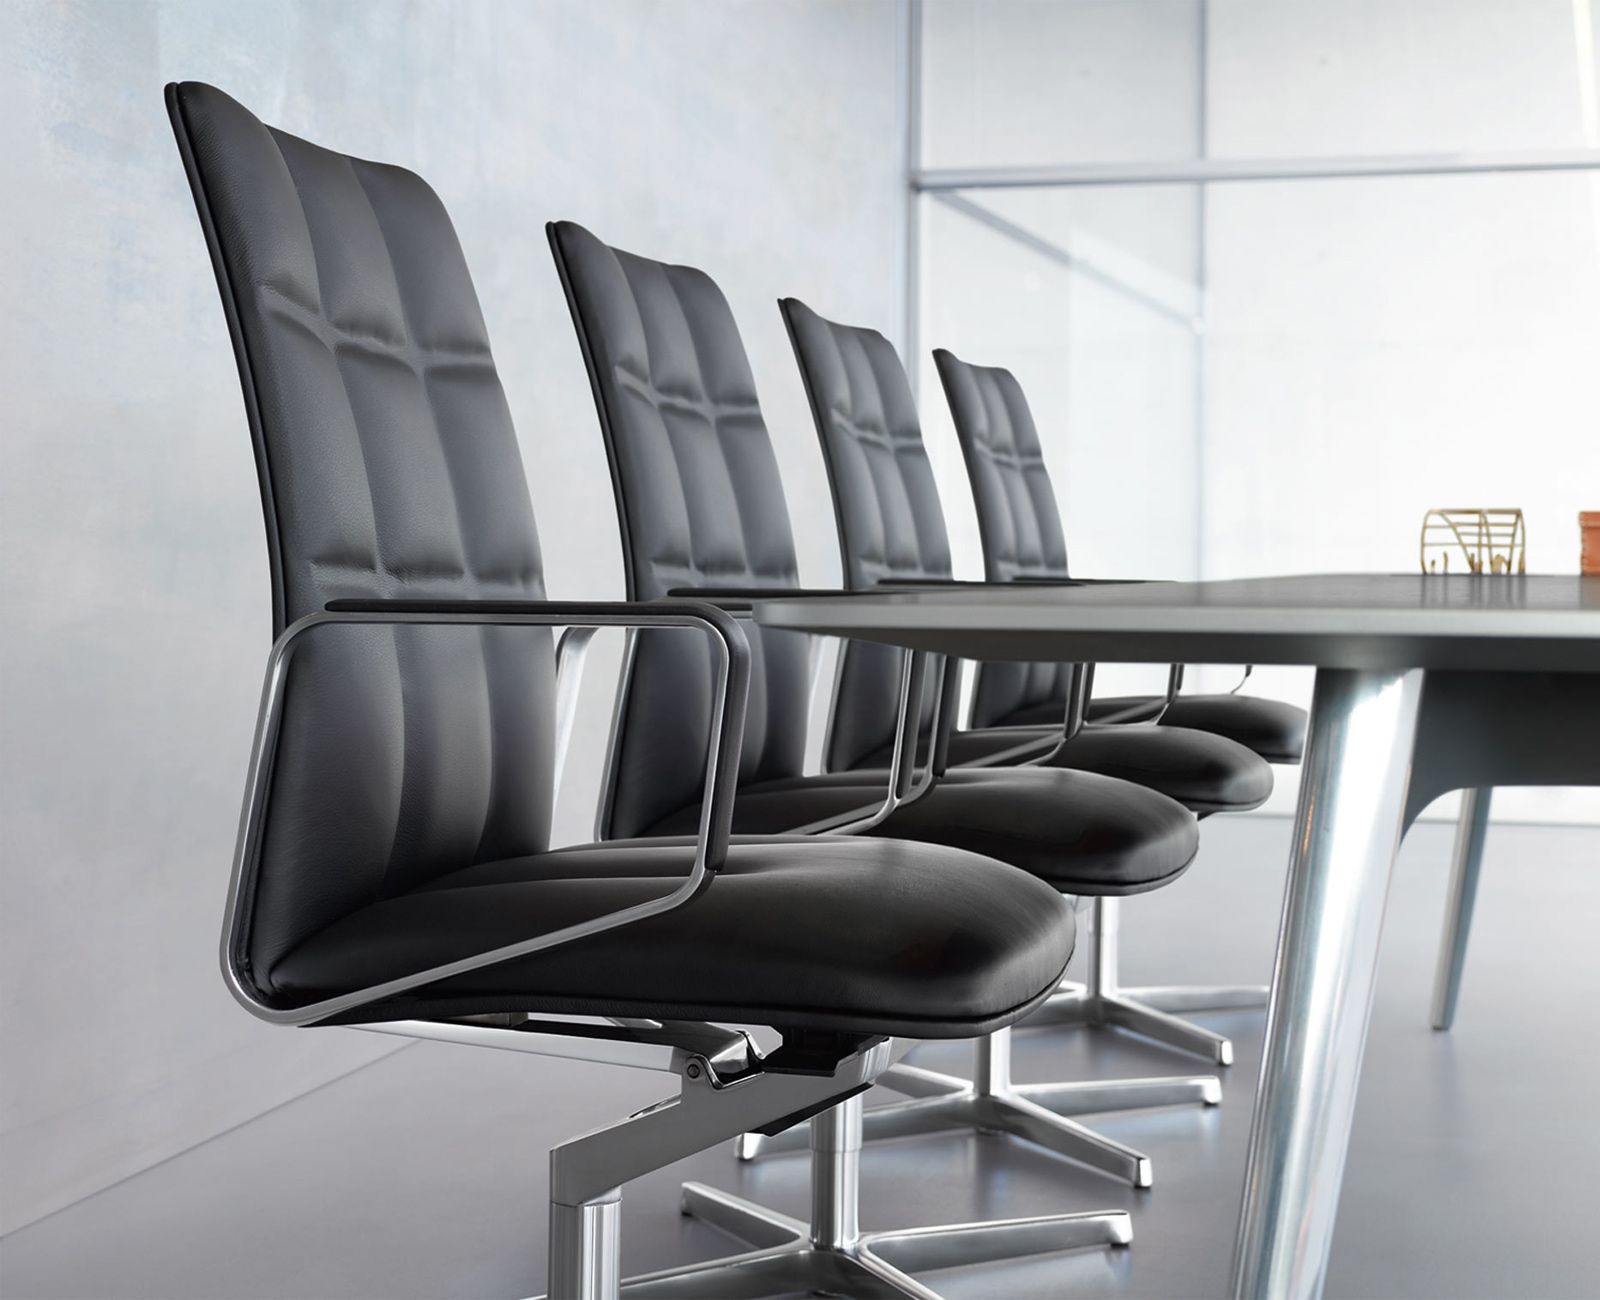 Walter Knoll Bureaustoel.Lead Chair Walter Knoll Black Leather Conference Meeting